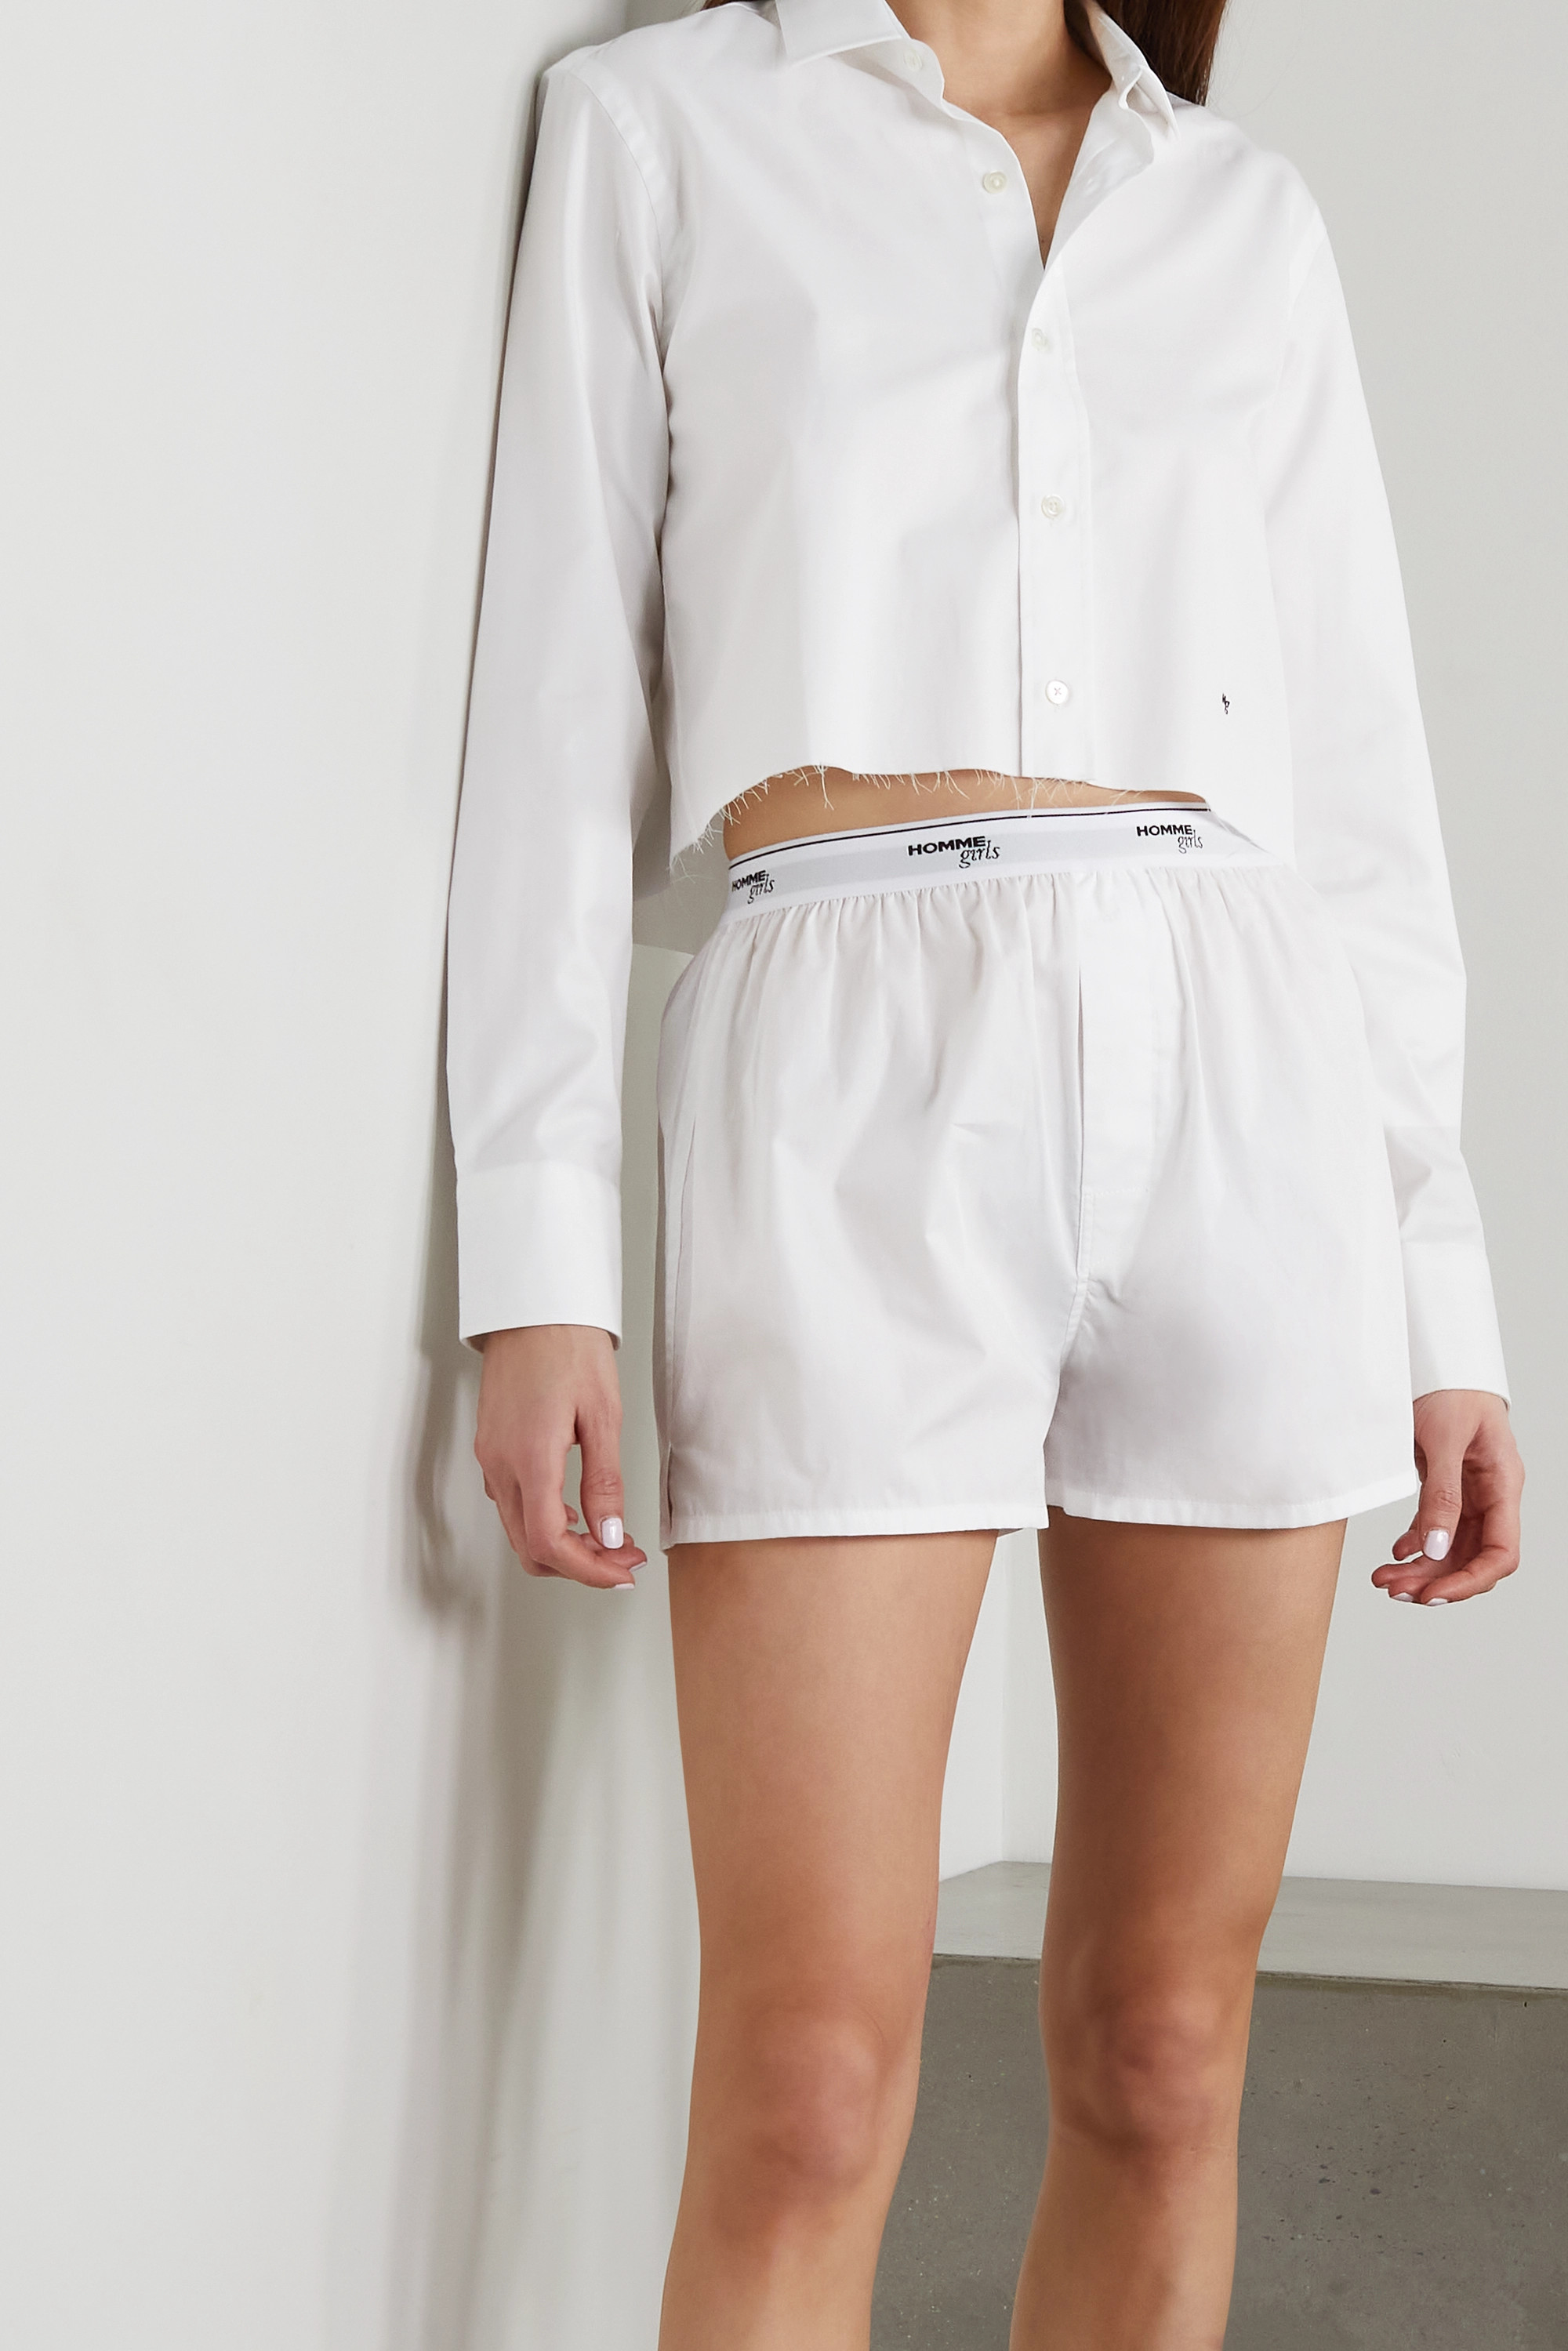 HOMMEGIRLS Cotton-poplin shorts